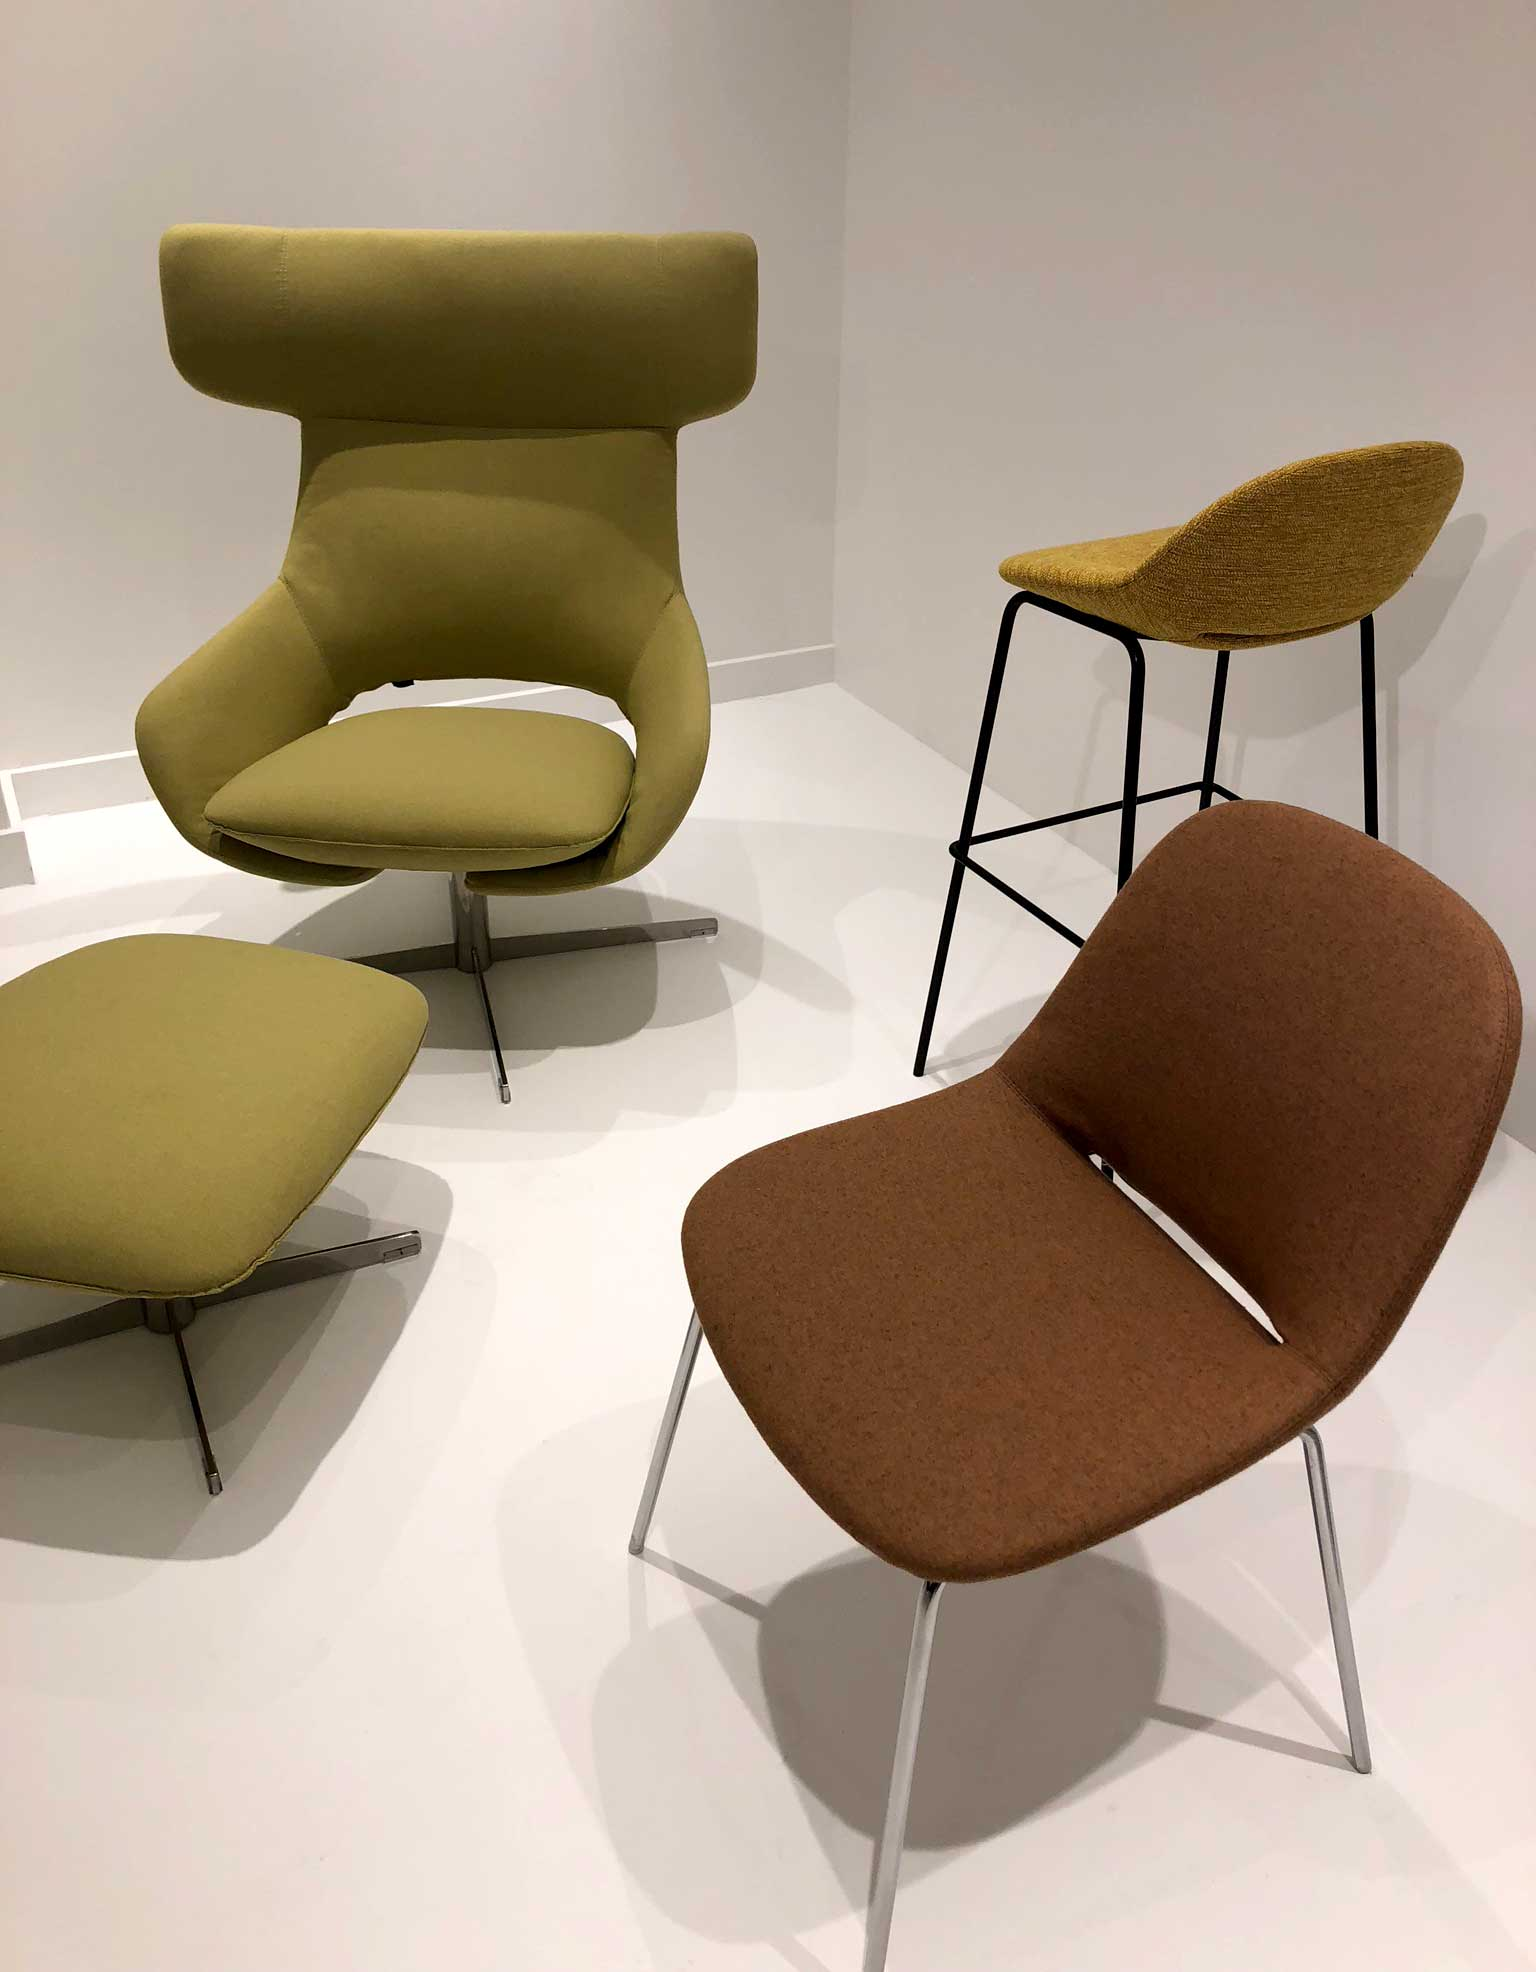 5 Trends We Saw at NeoCon 2018 from Unisource Solutions - Natural colors